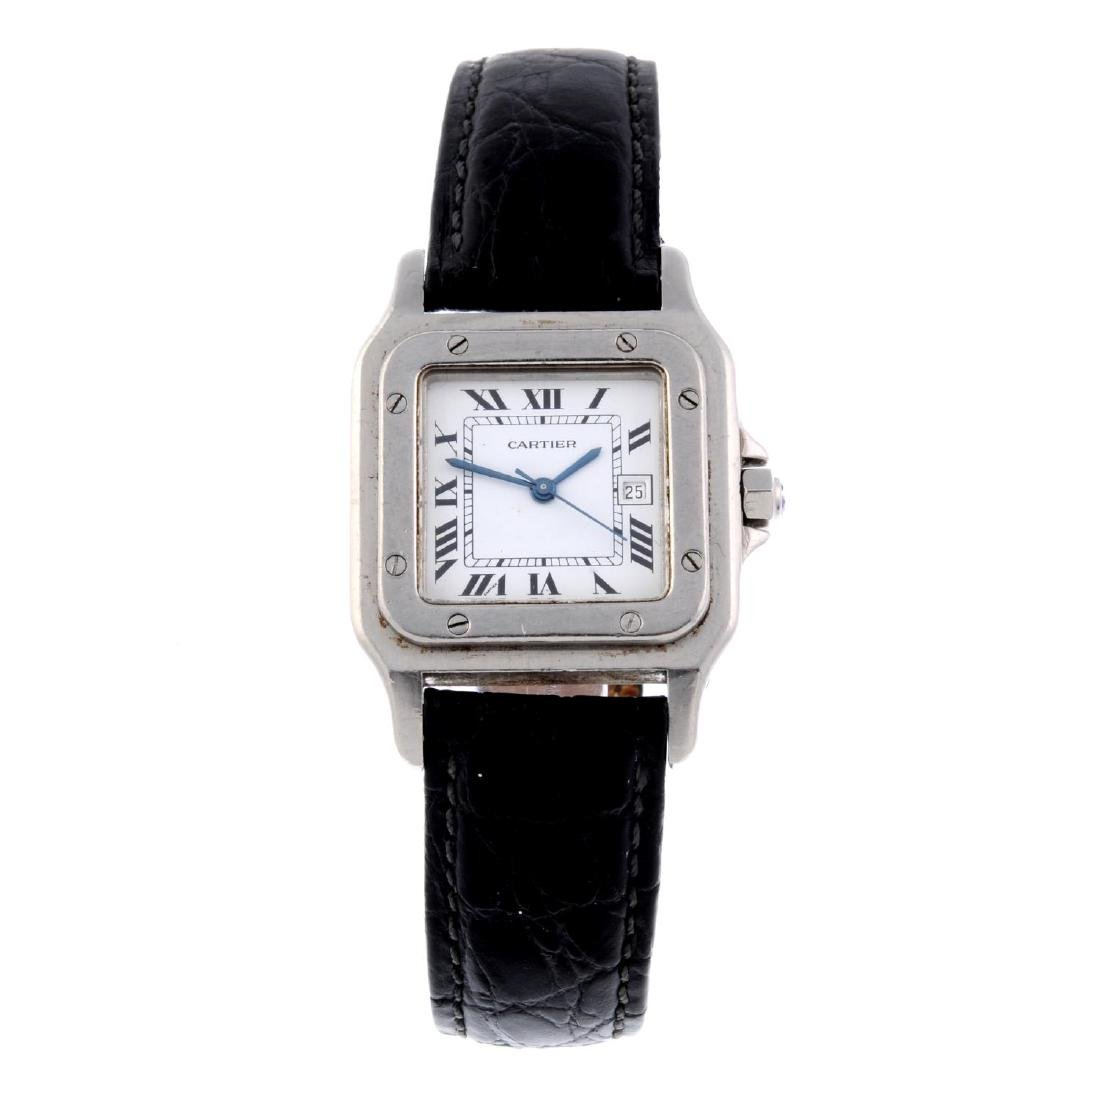 CARTIER - a Santos wrist watch. Stainless steel case.